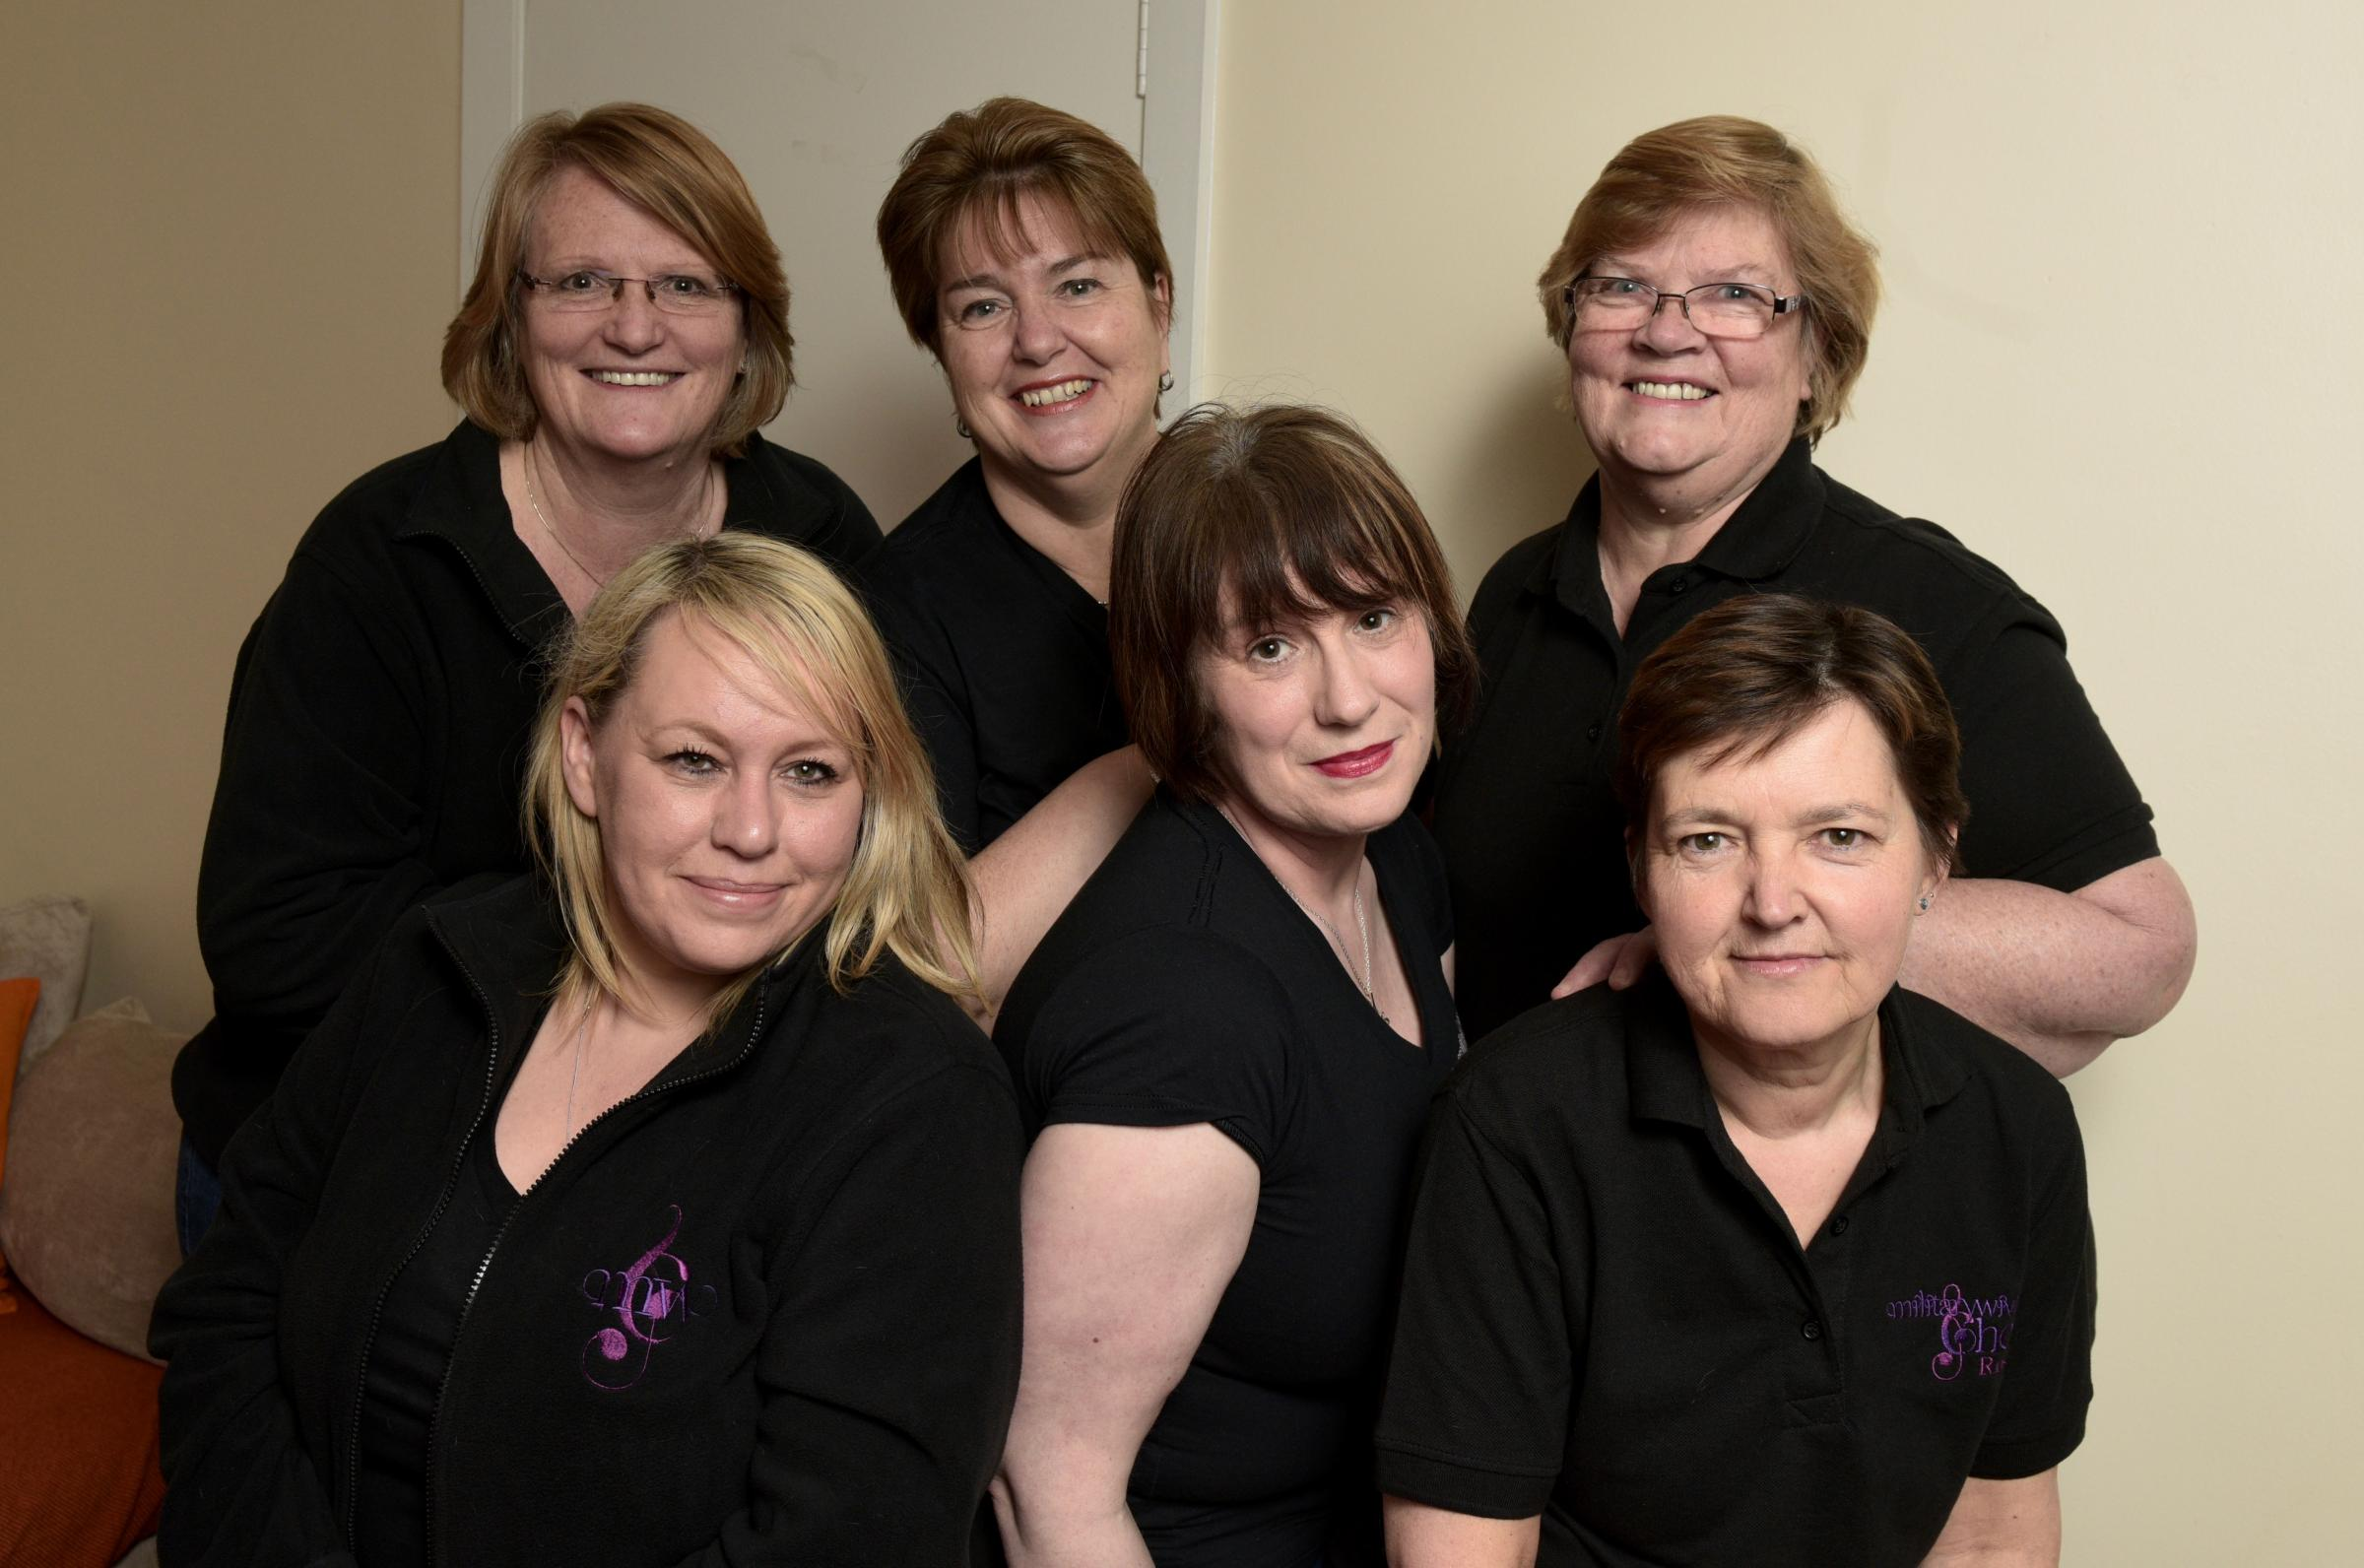 Ladies of Rosyth Military Wives Choir; Lesley Kay; Jane Oag; Karyn Aygun; Elaine Grant; Lorna Ashworth and Nicola Finlay. Photo: Jim Payne